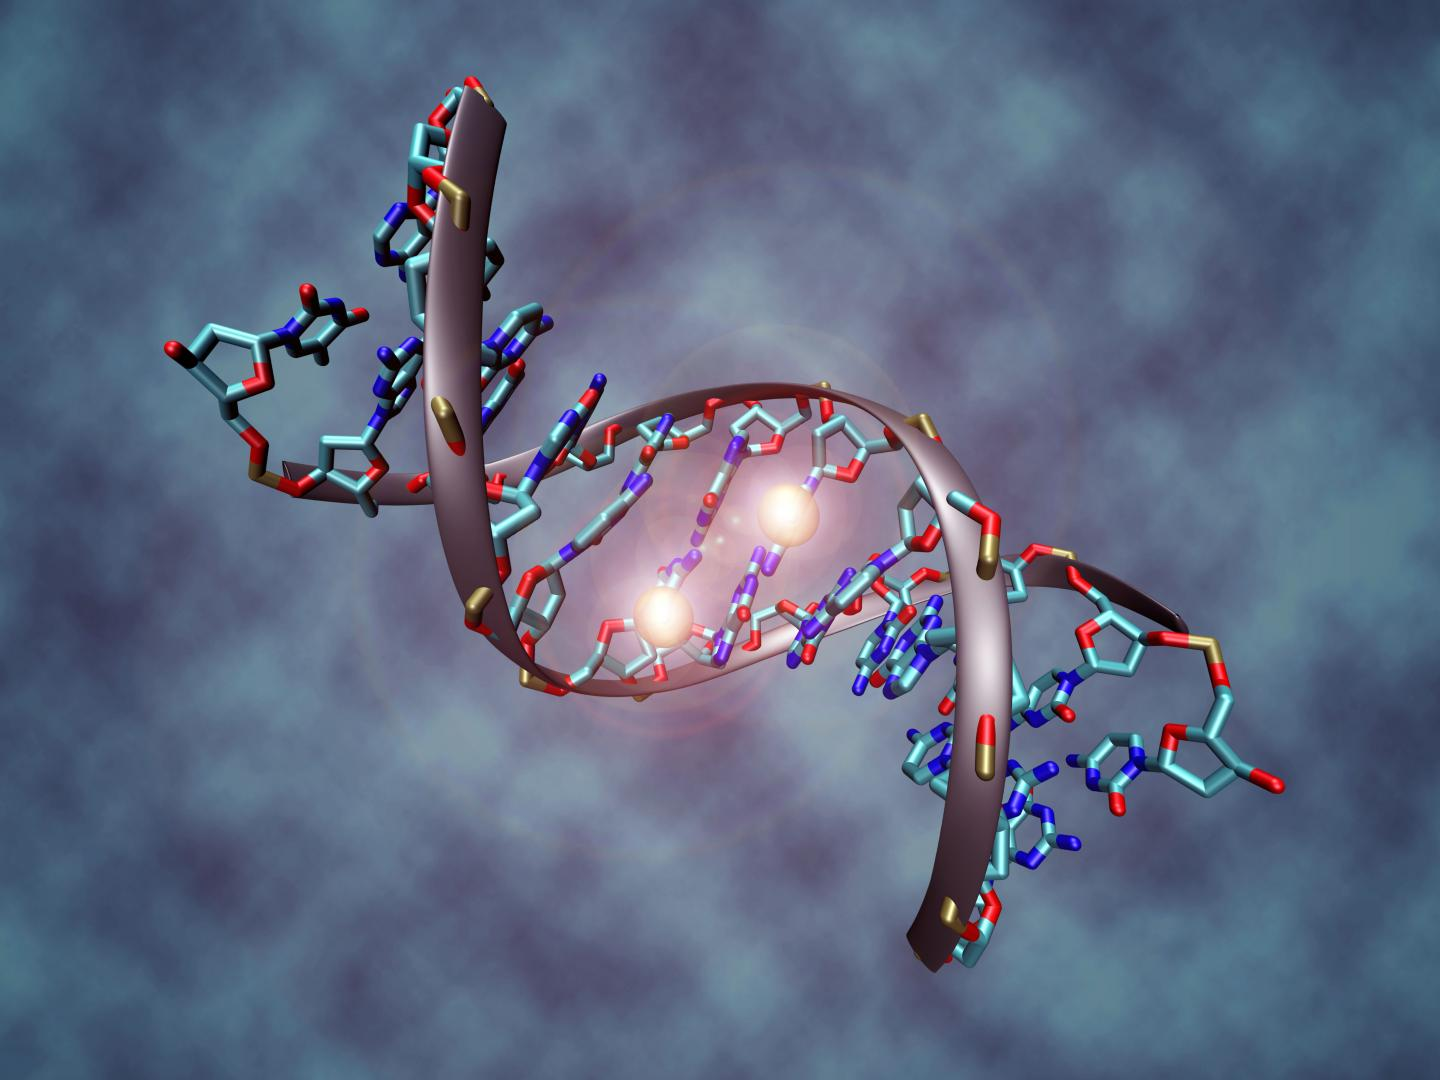 This image shows a DNA molecule that is methylated on both strands on the center cytosine. DNA methylation plays an important role for epigenetic gene regulation in development and cancer.